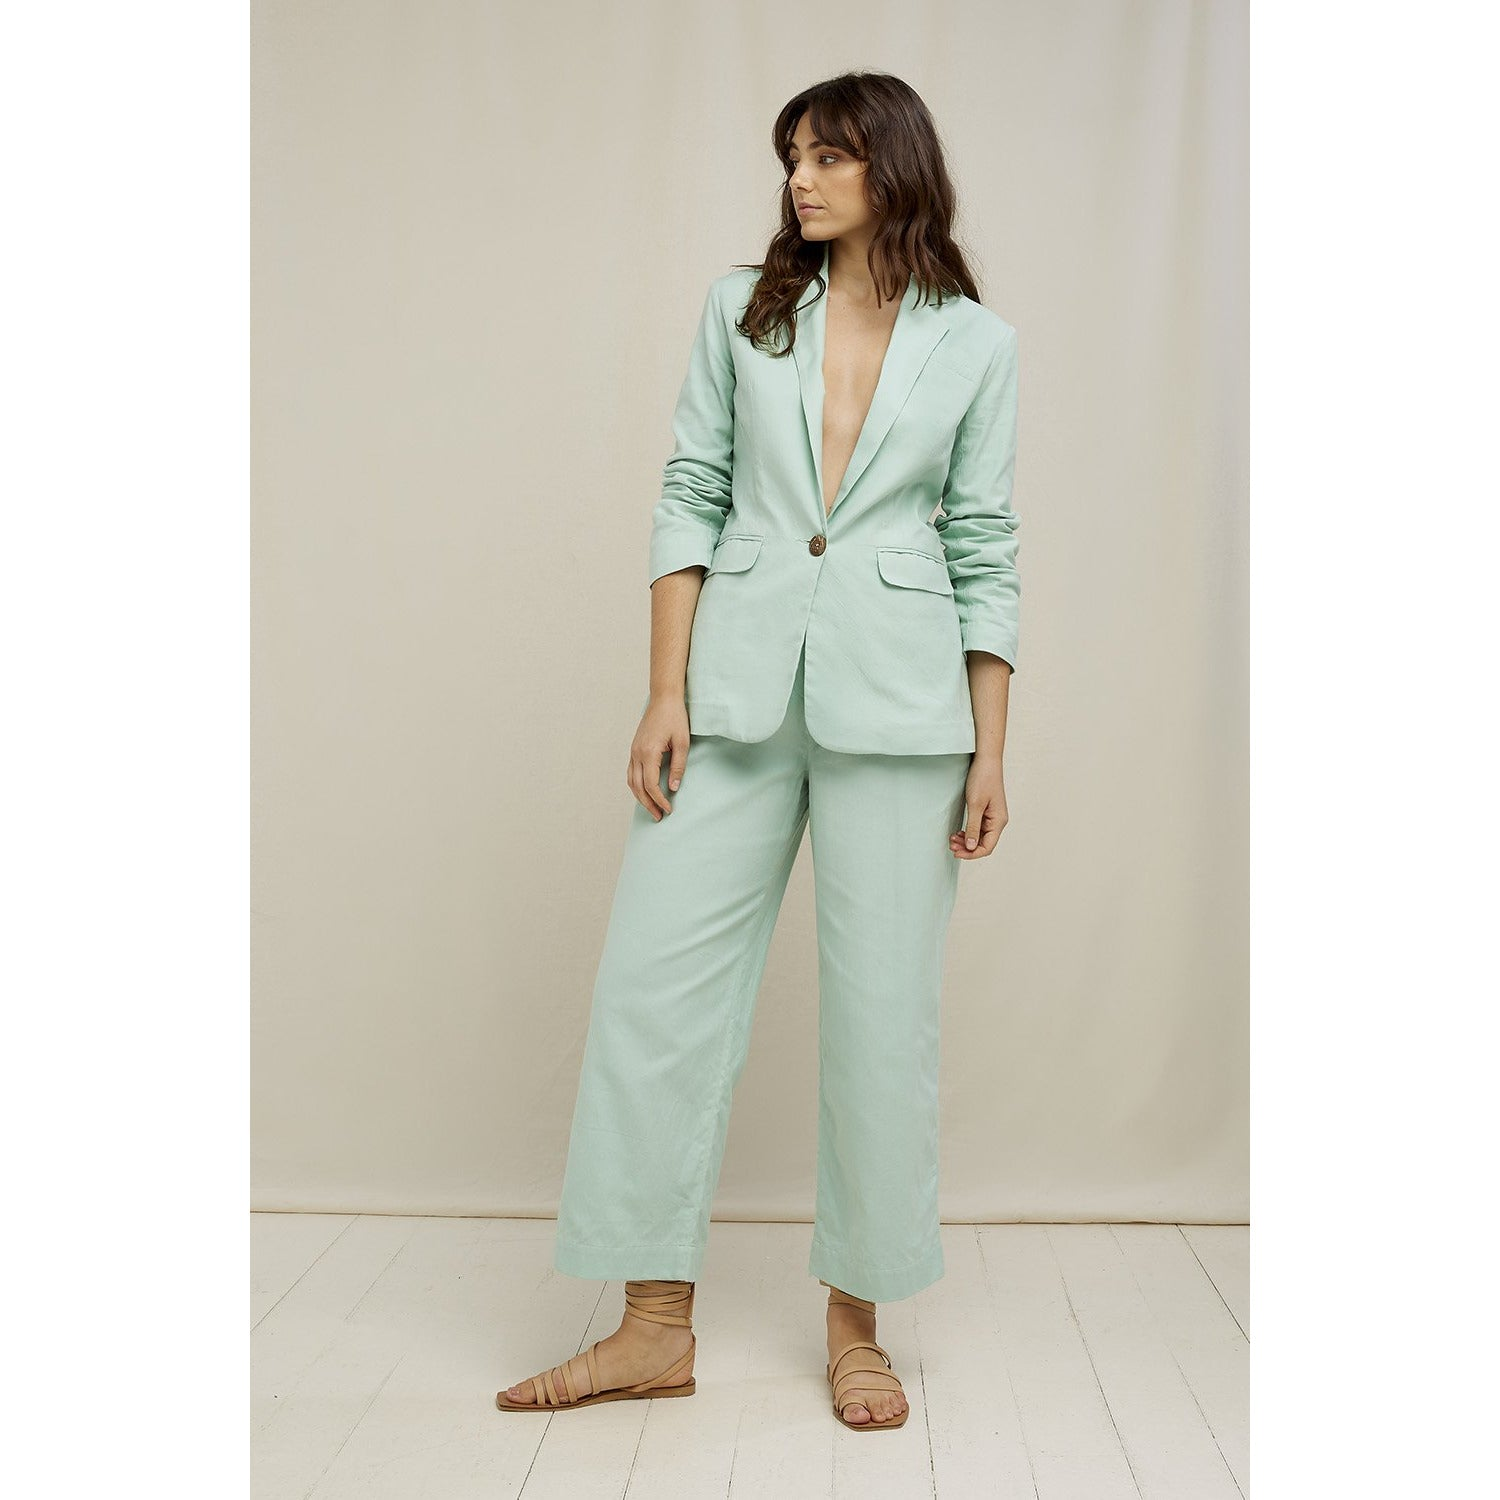 Mirren Blazer - mint